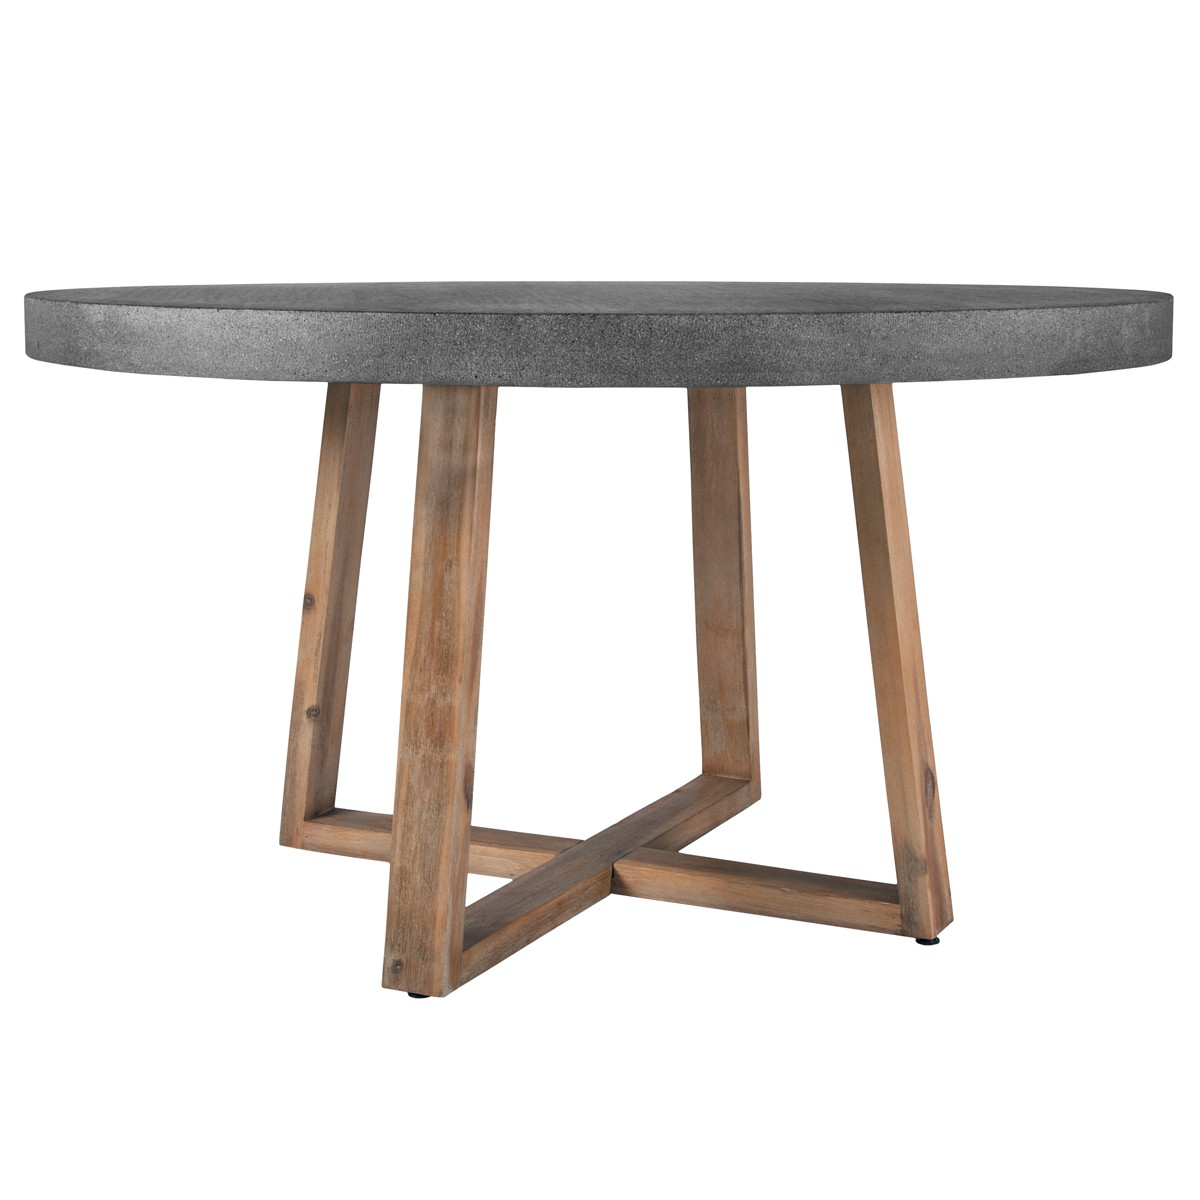 Table ronde r sine et bois 140 cm koya design - Table en bois ronde ...